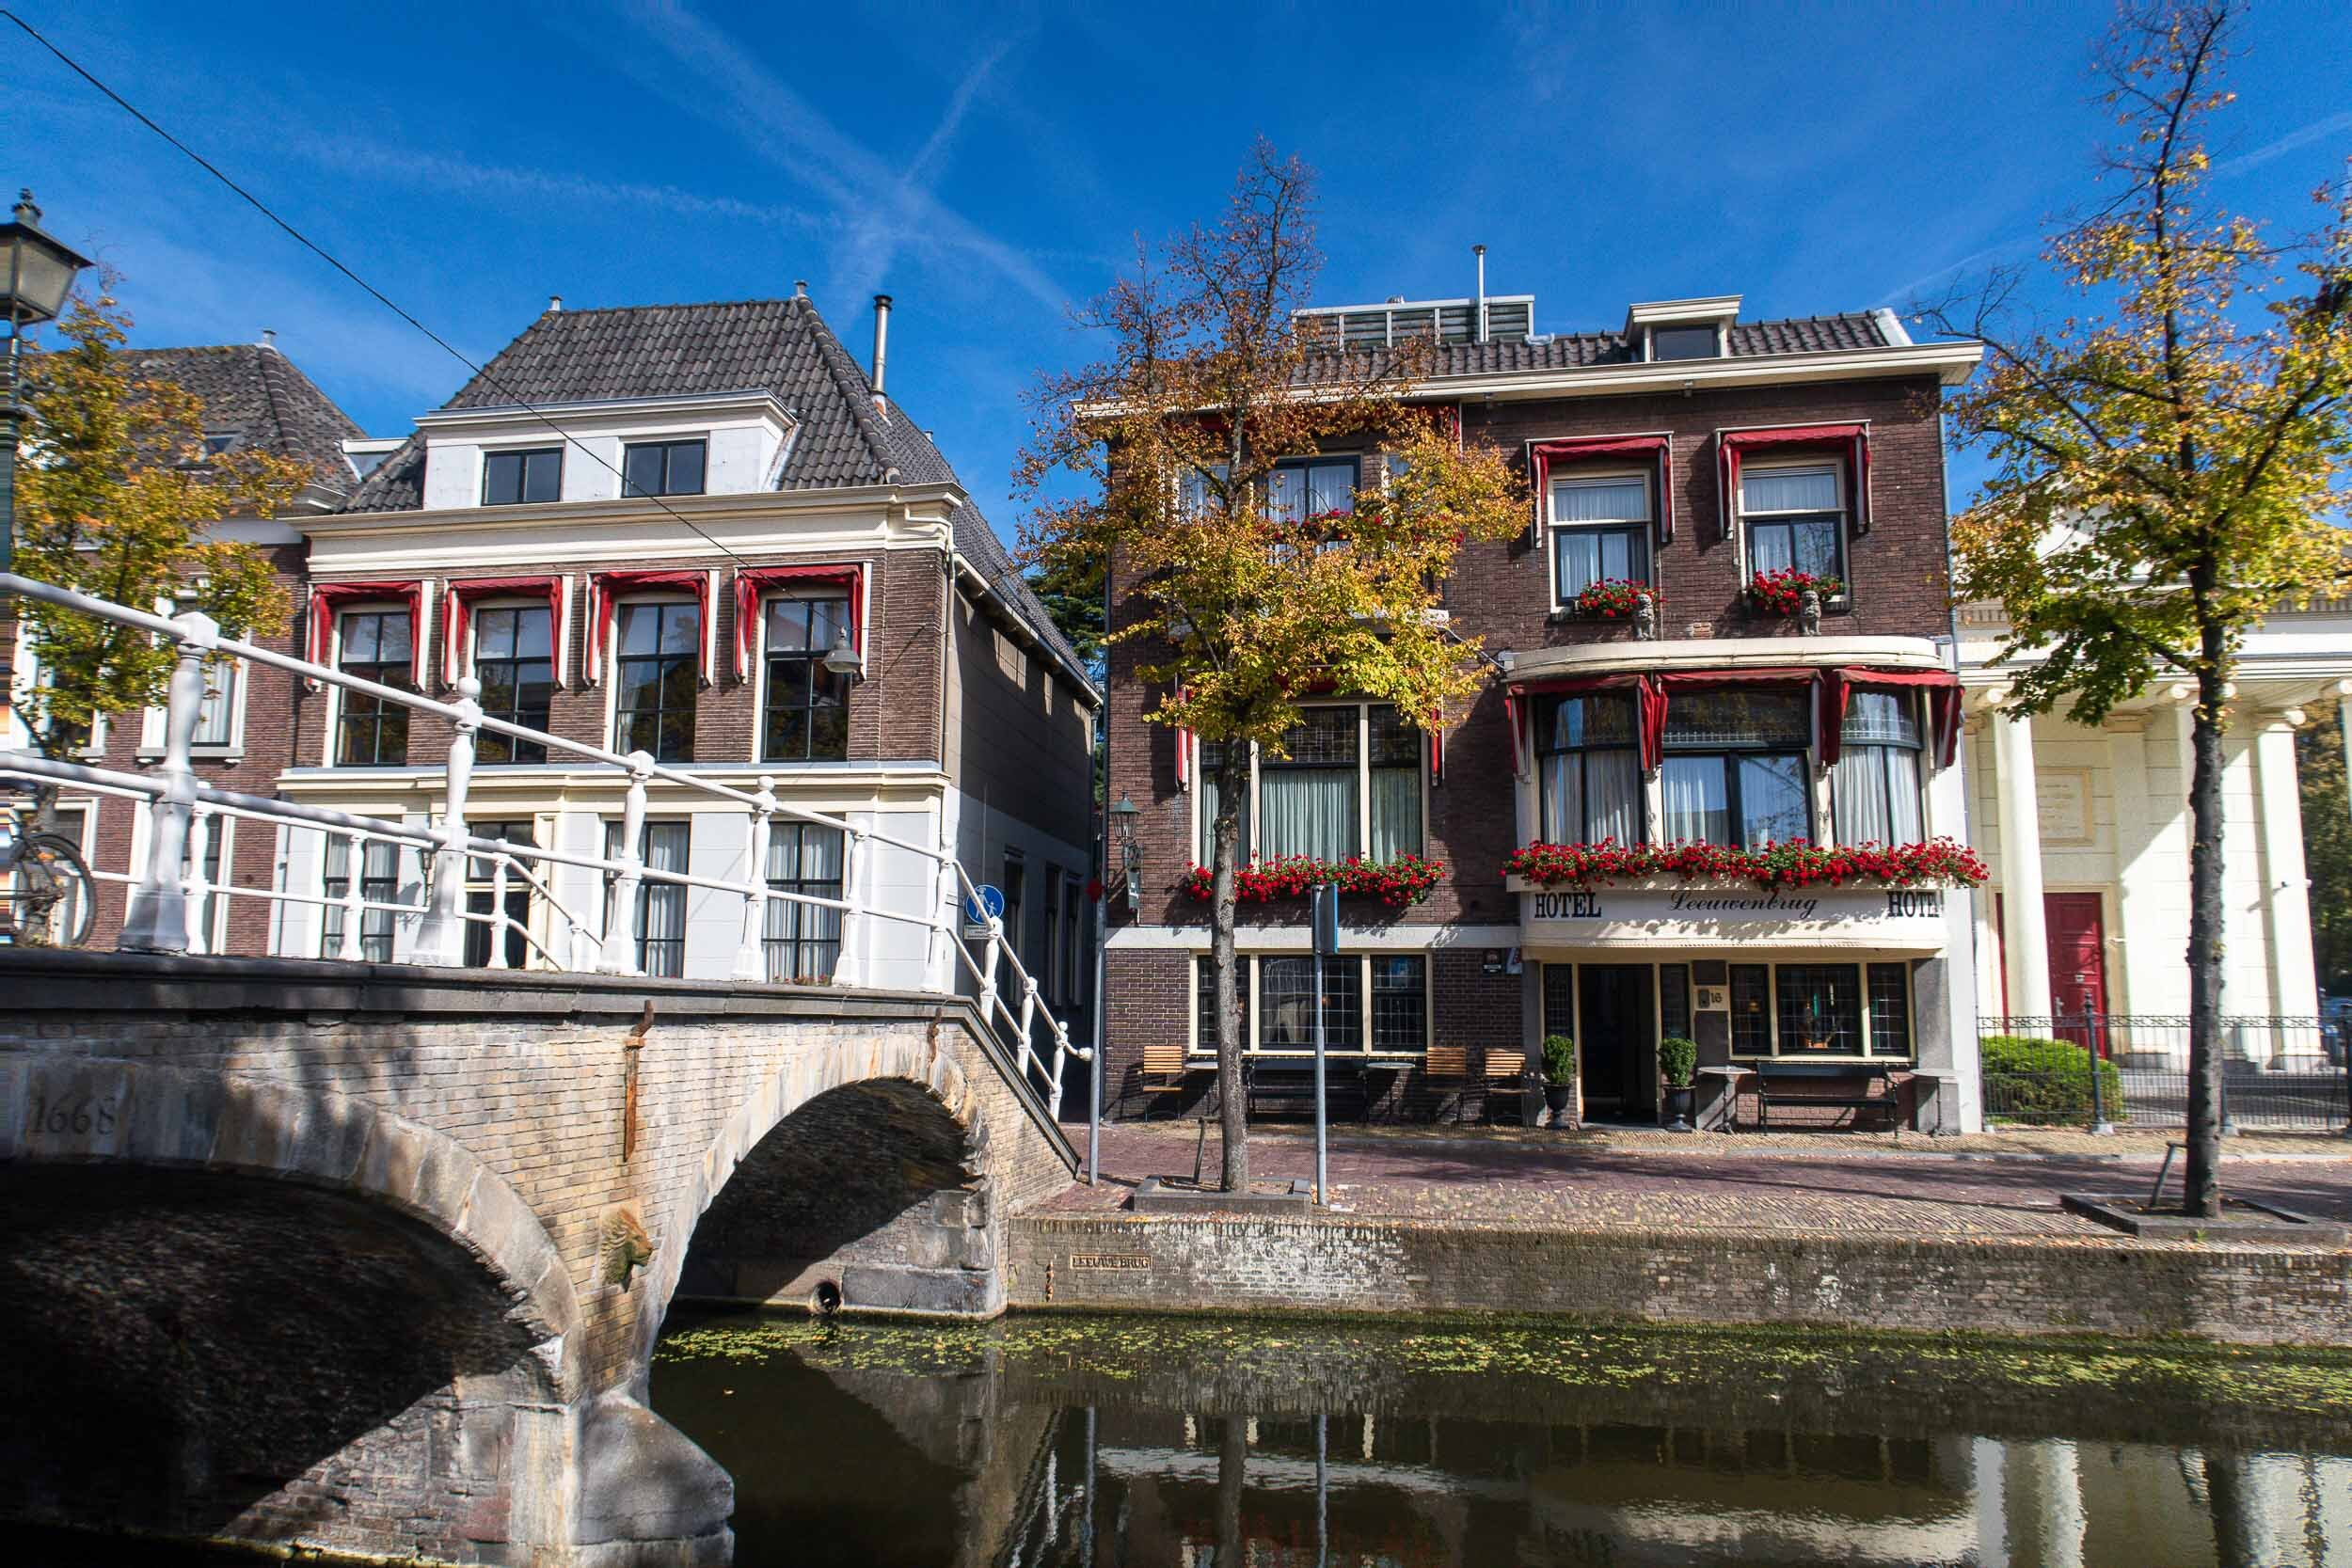 Beautiful pictures of the city Delft, Netherlands during the fall when the leaves are changing.